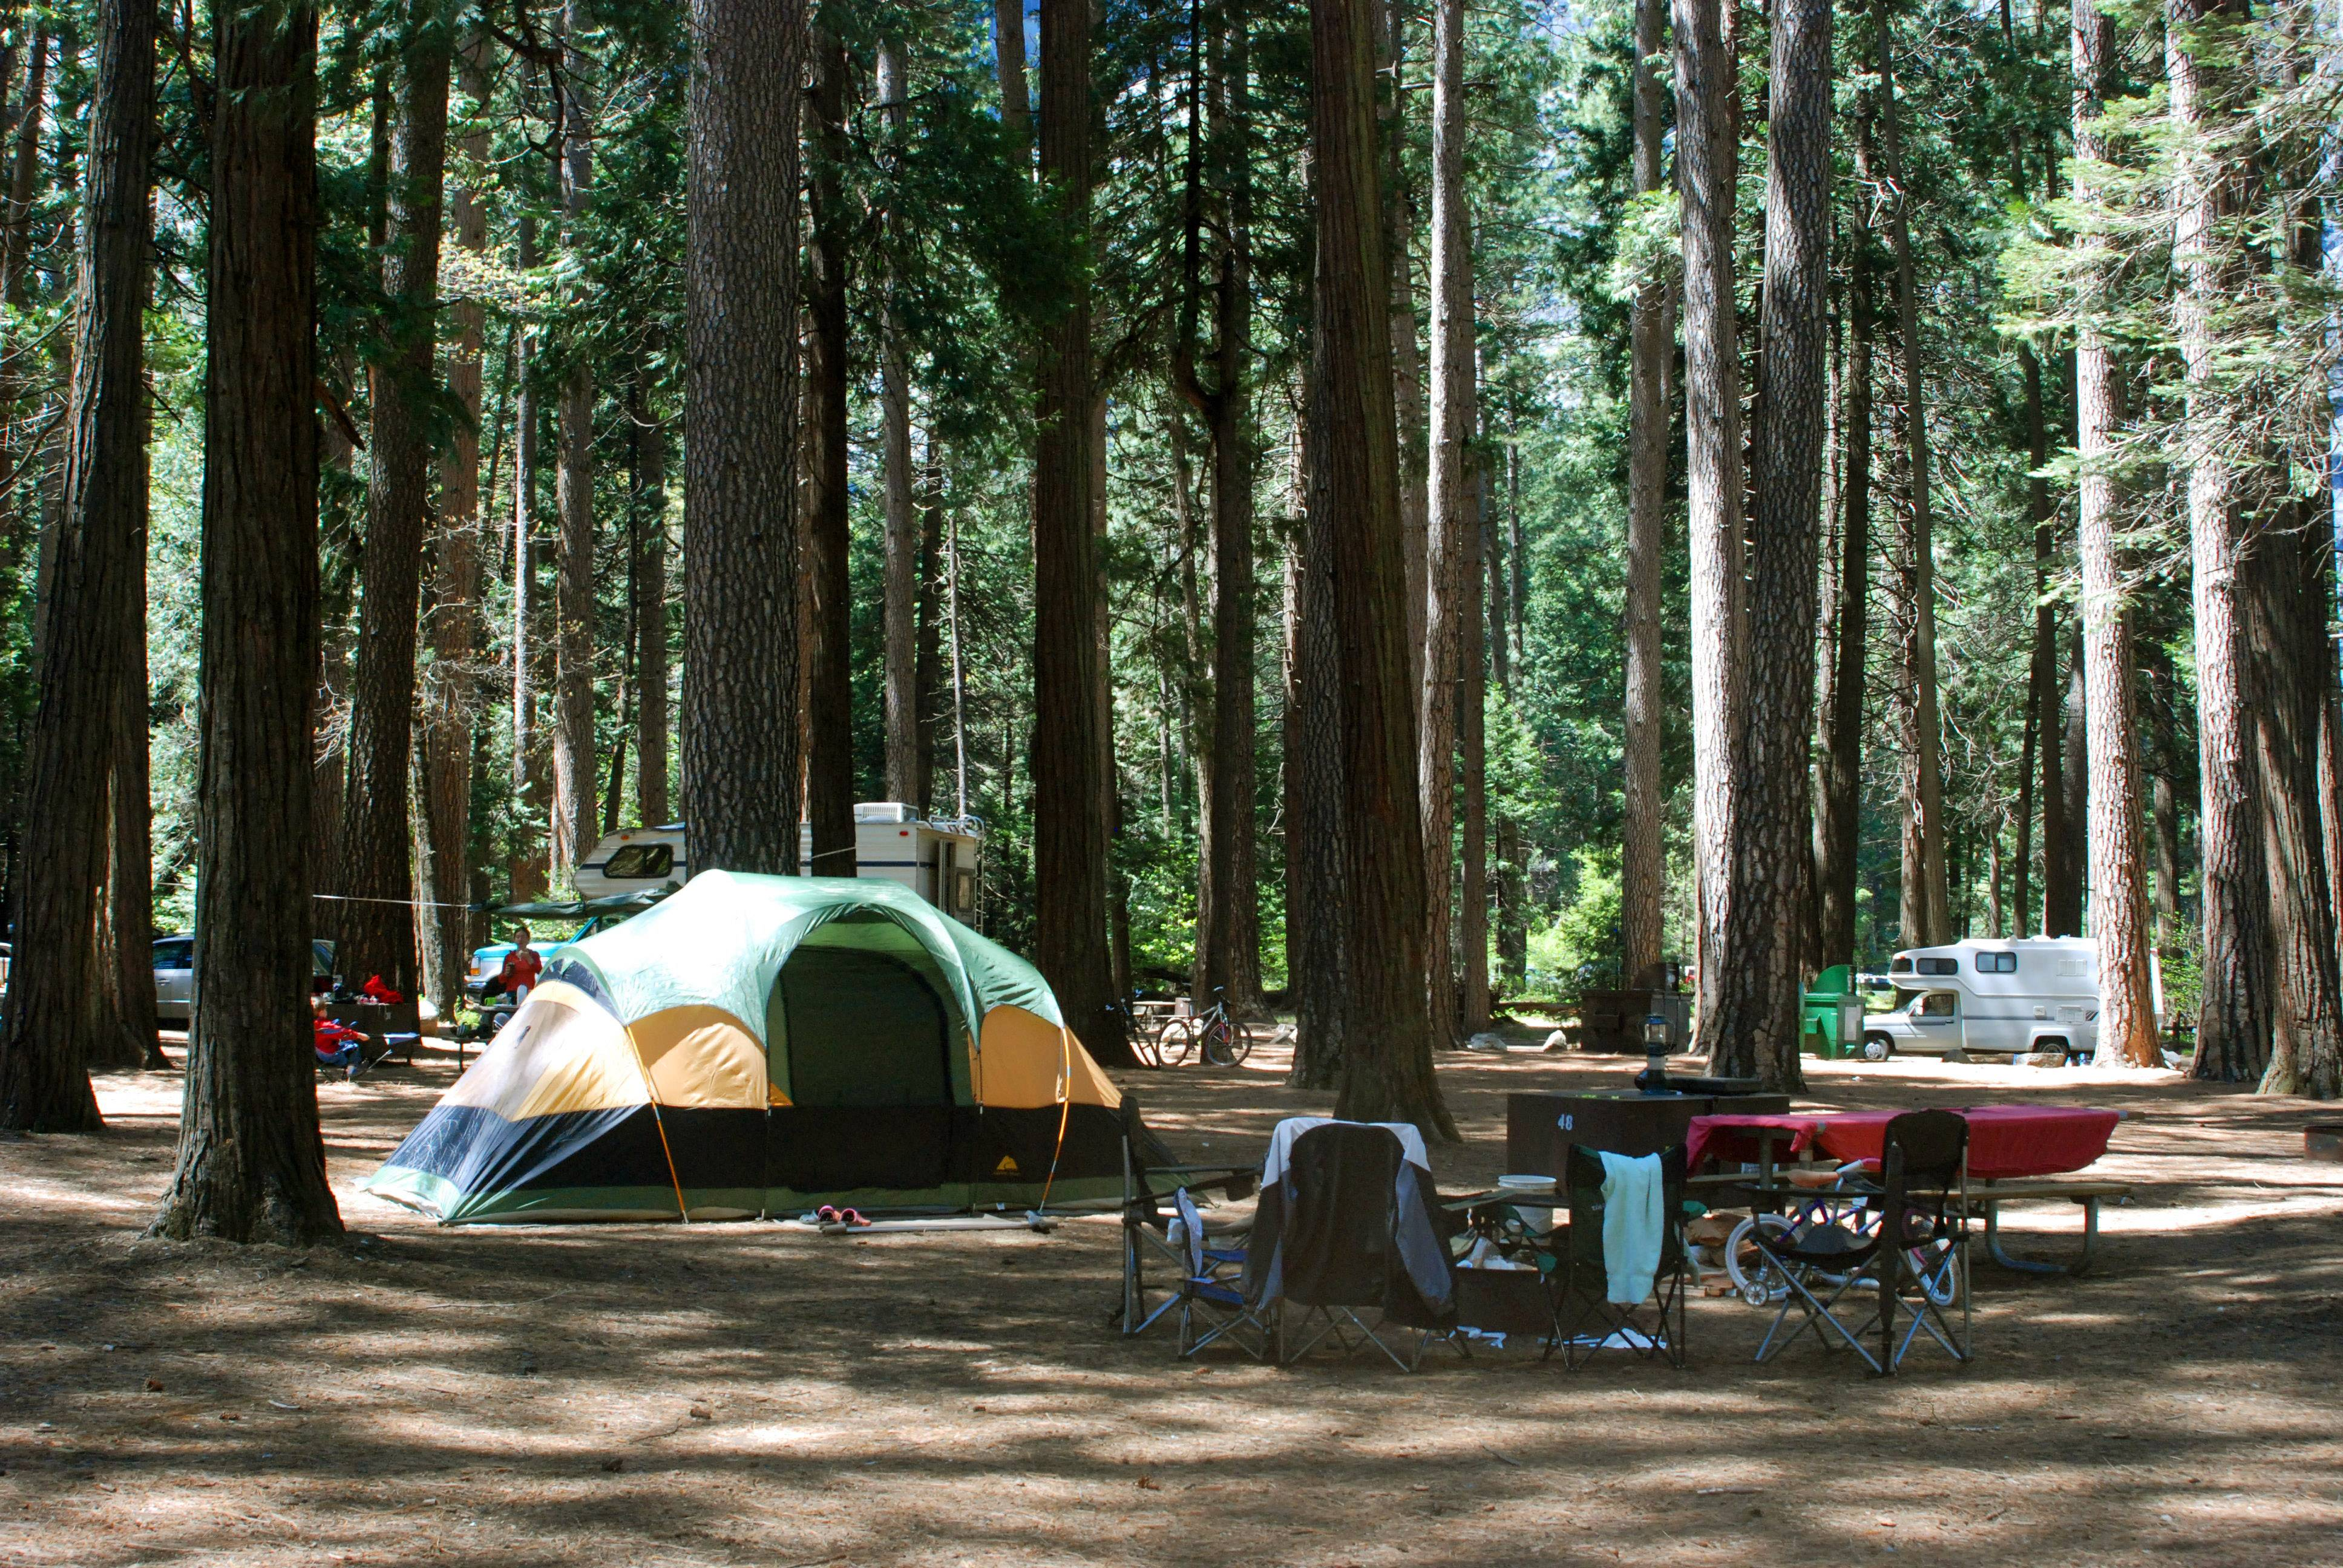 Camping, such as at Yosemite National Park in California, can bring new experiences and give you a chance to de-stress in the open air.